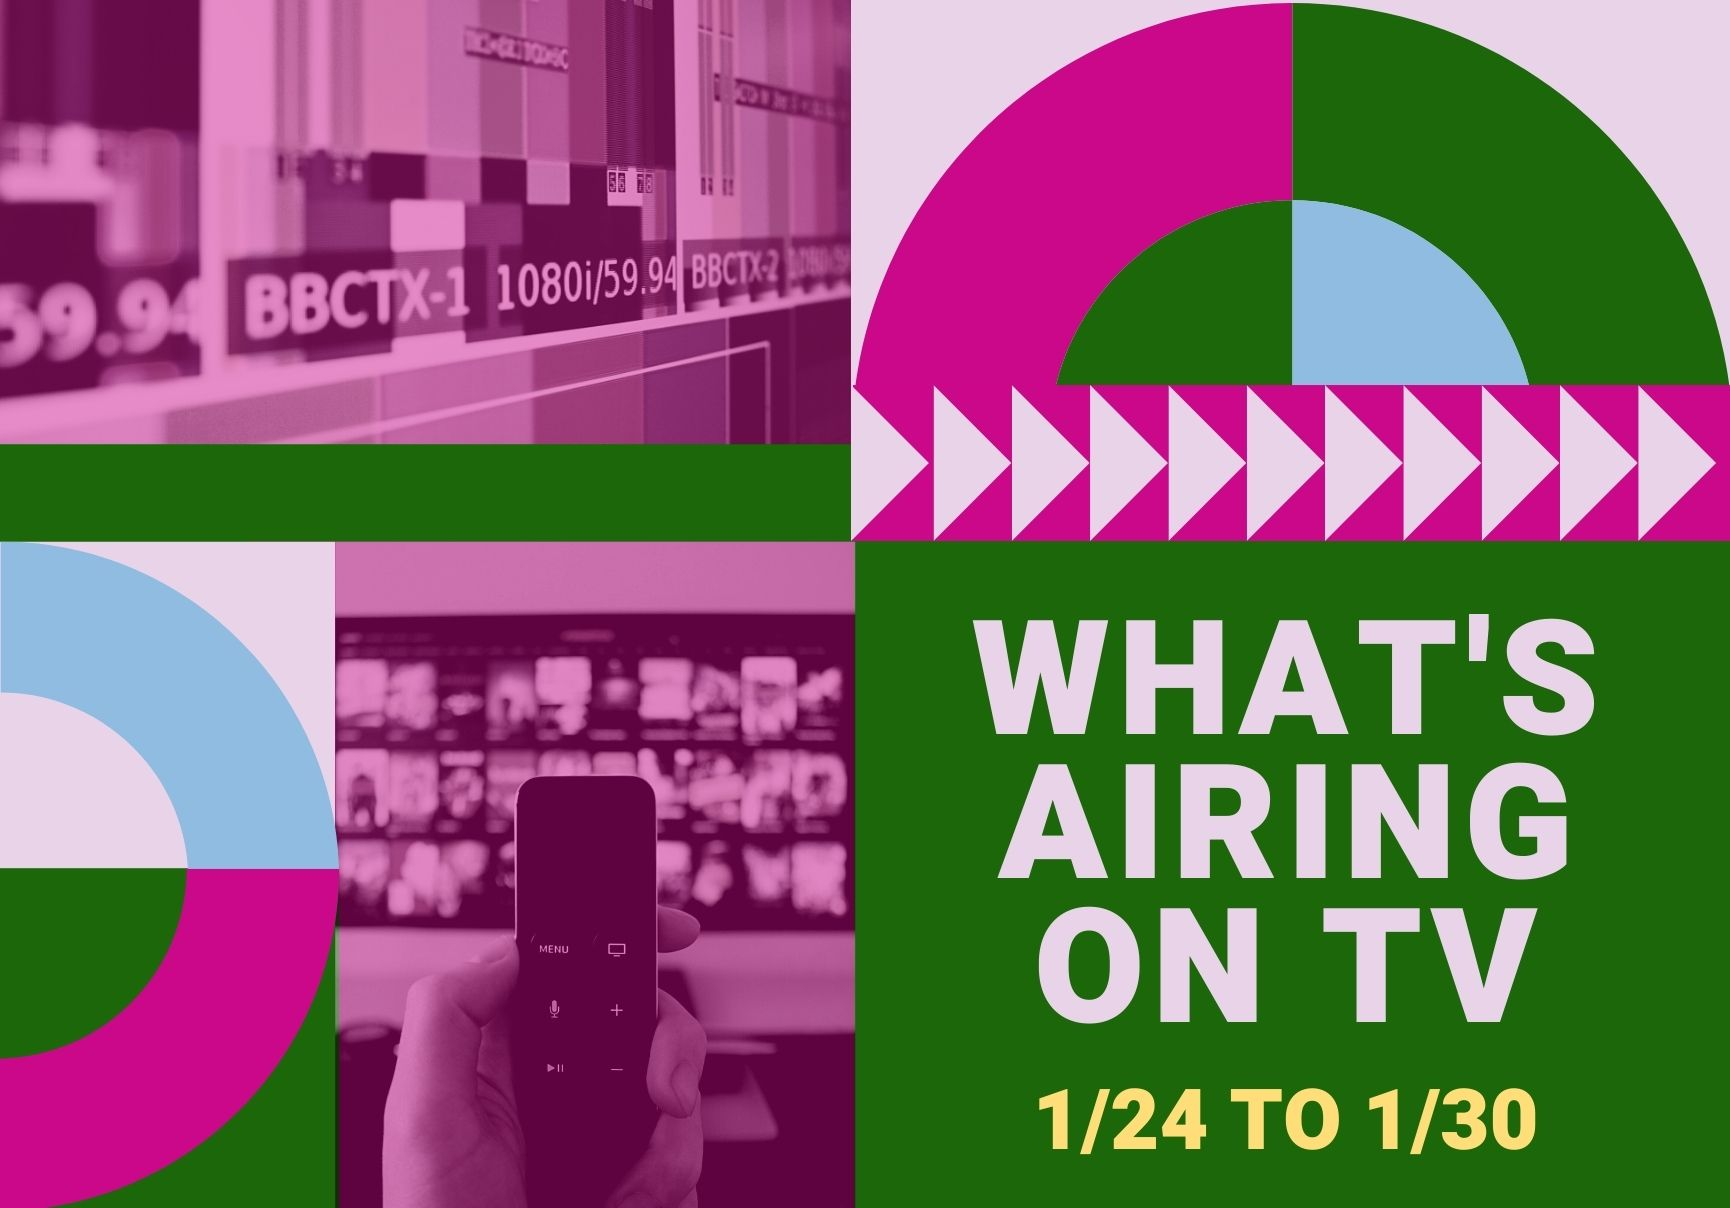 What's Airing This Week on TV - 1/24 to 1/30